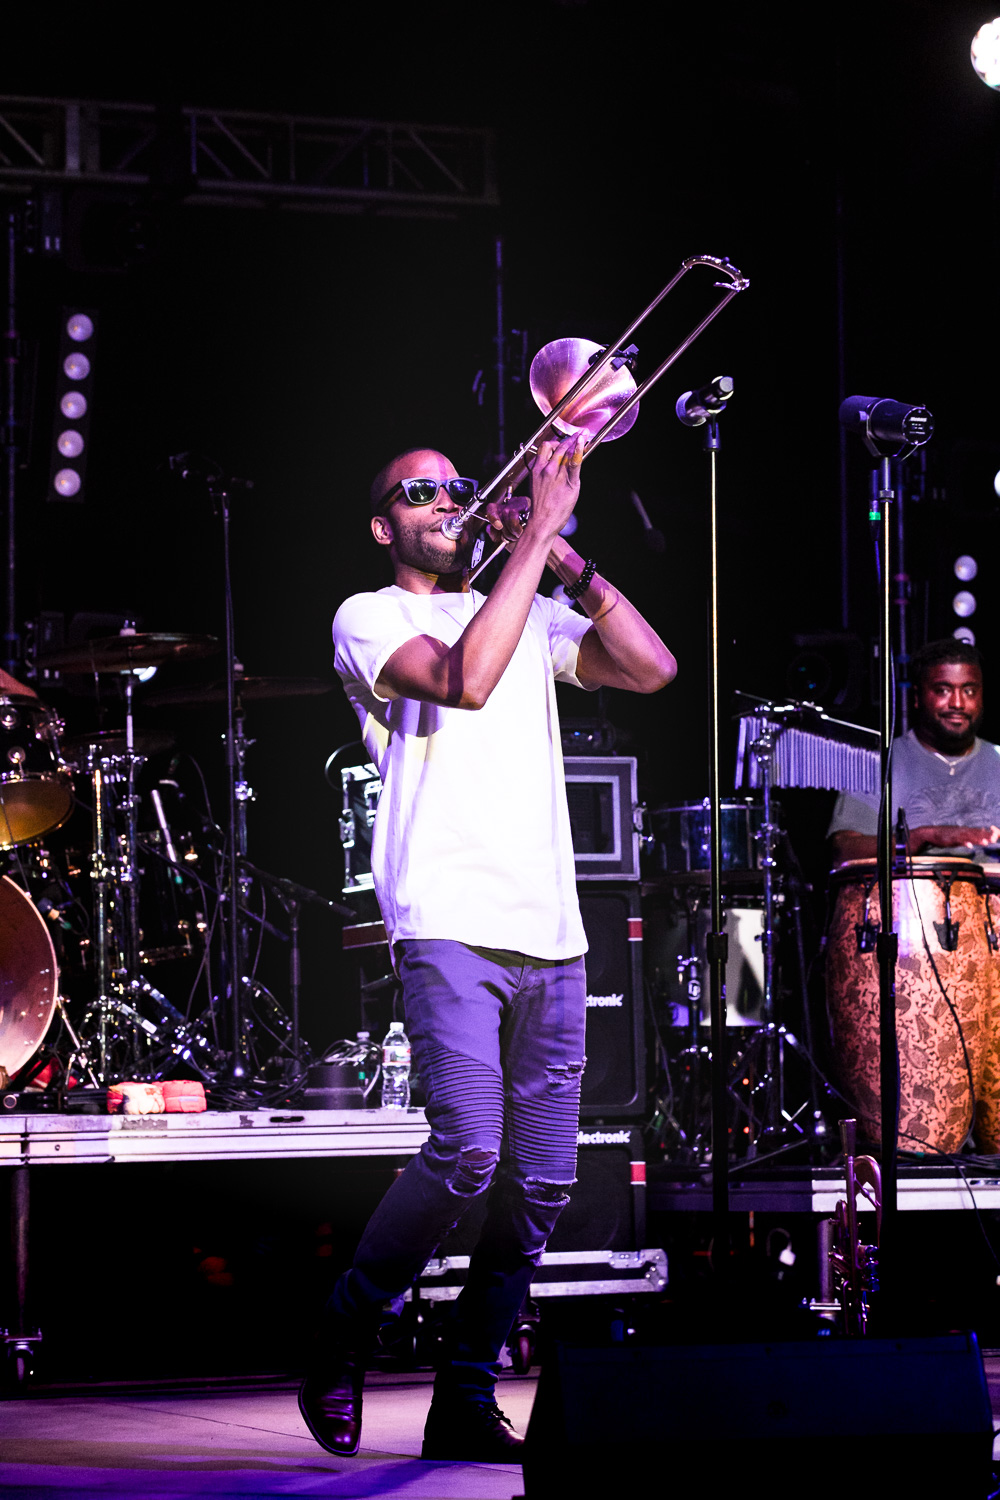 Trombone Shorty playing his signature instrument at Red Butte Amphitheatre. Photo: Lmsorenson.net